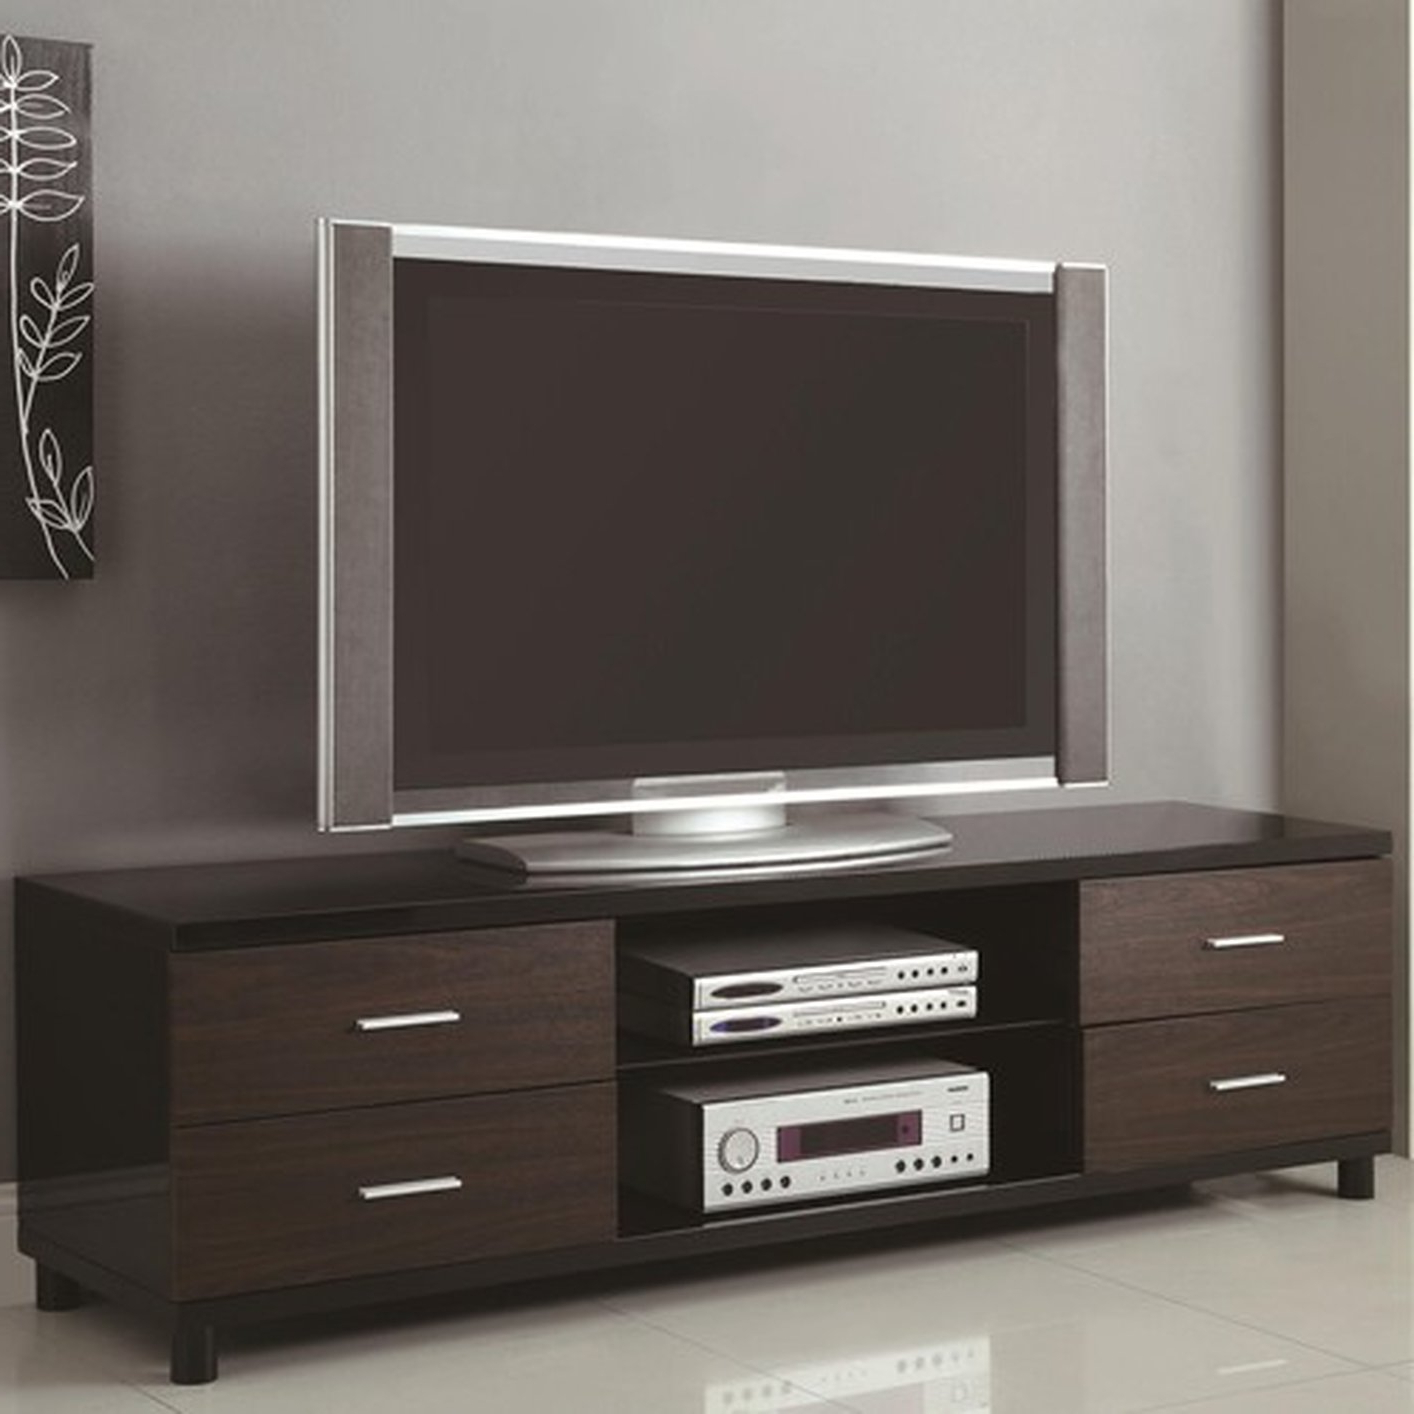 Wood Tv Stands For Most Popular Brown Wood Tv Stand – Steal A Sofa Furniture Outlet Los Angeles Ca (View 17 of 20)